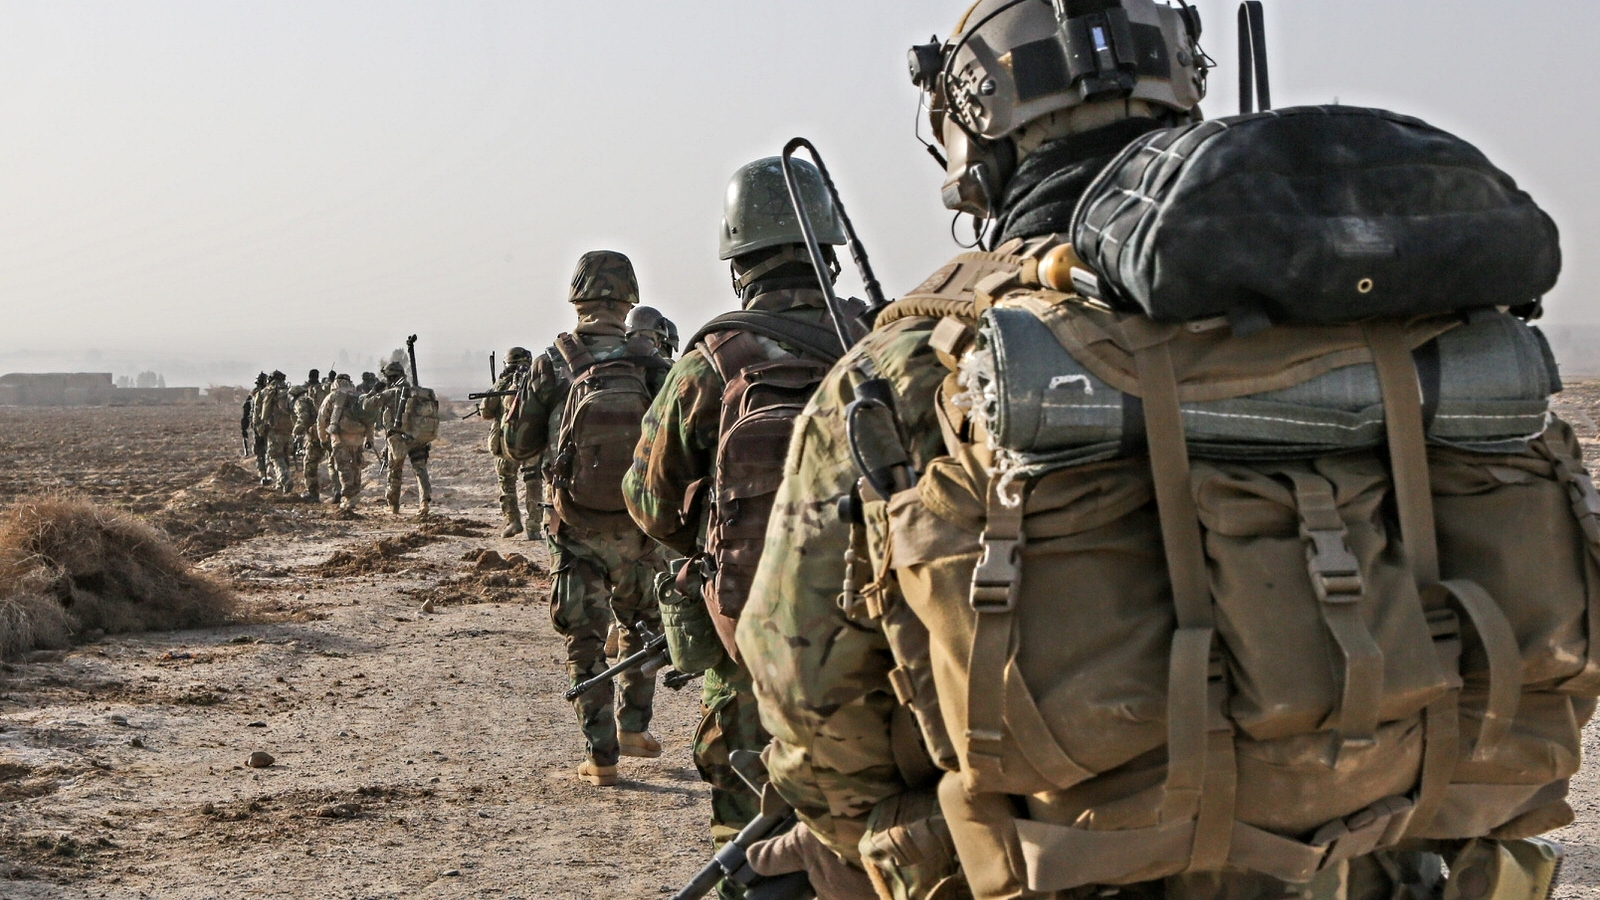 A_U.S._Army_Special_Forces_Soldier_with_Combined_Joint_Special_Operations_Task_Force-Afghanistan_and_Afghan_National_Army_commandos_with_the_3rd_Company,_3rd_Special_Operations_Kandak_move_toward_a_compound_140101-A-LW390-143.jpg